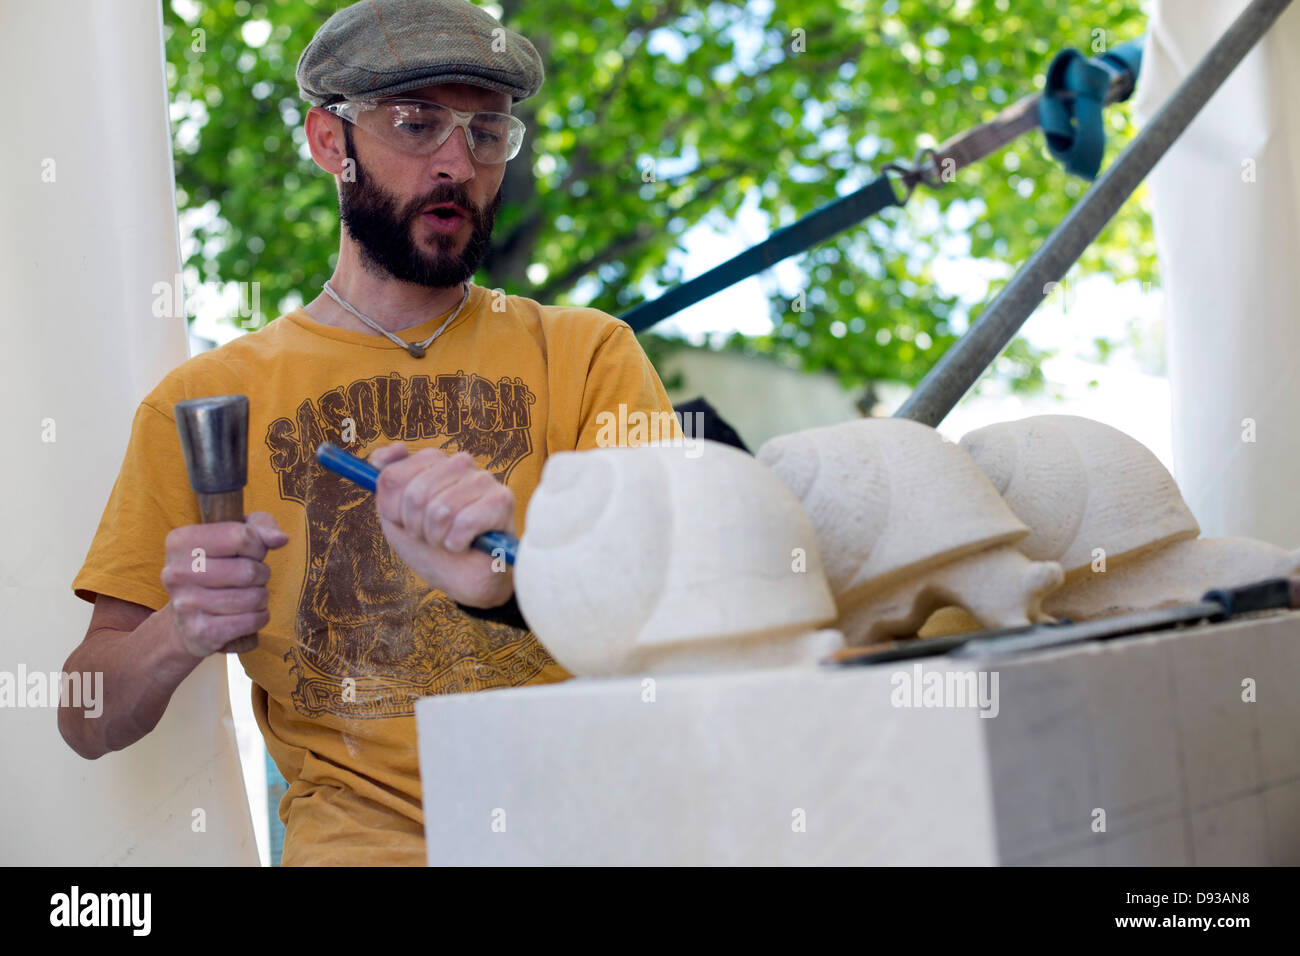 FESTIVAL OF STONE - sculpture competition in Bristol - Stock Image